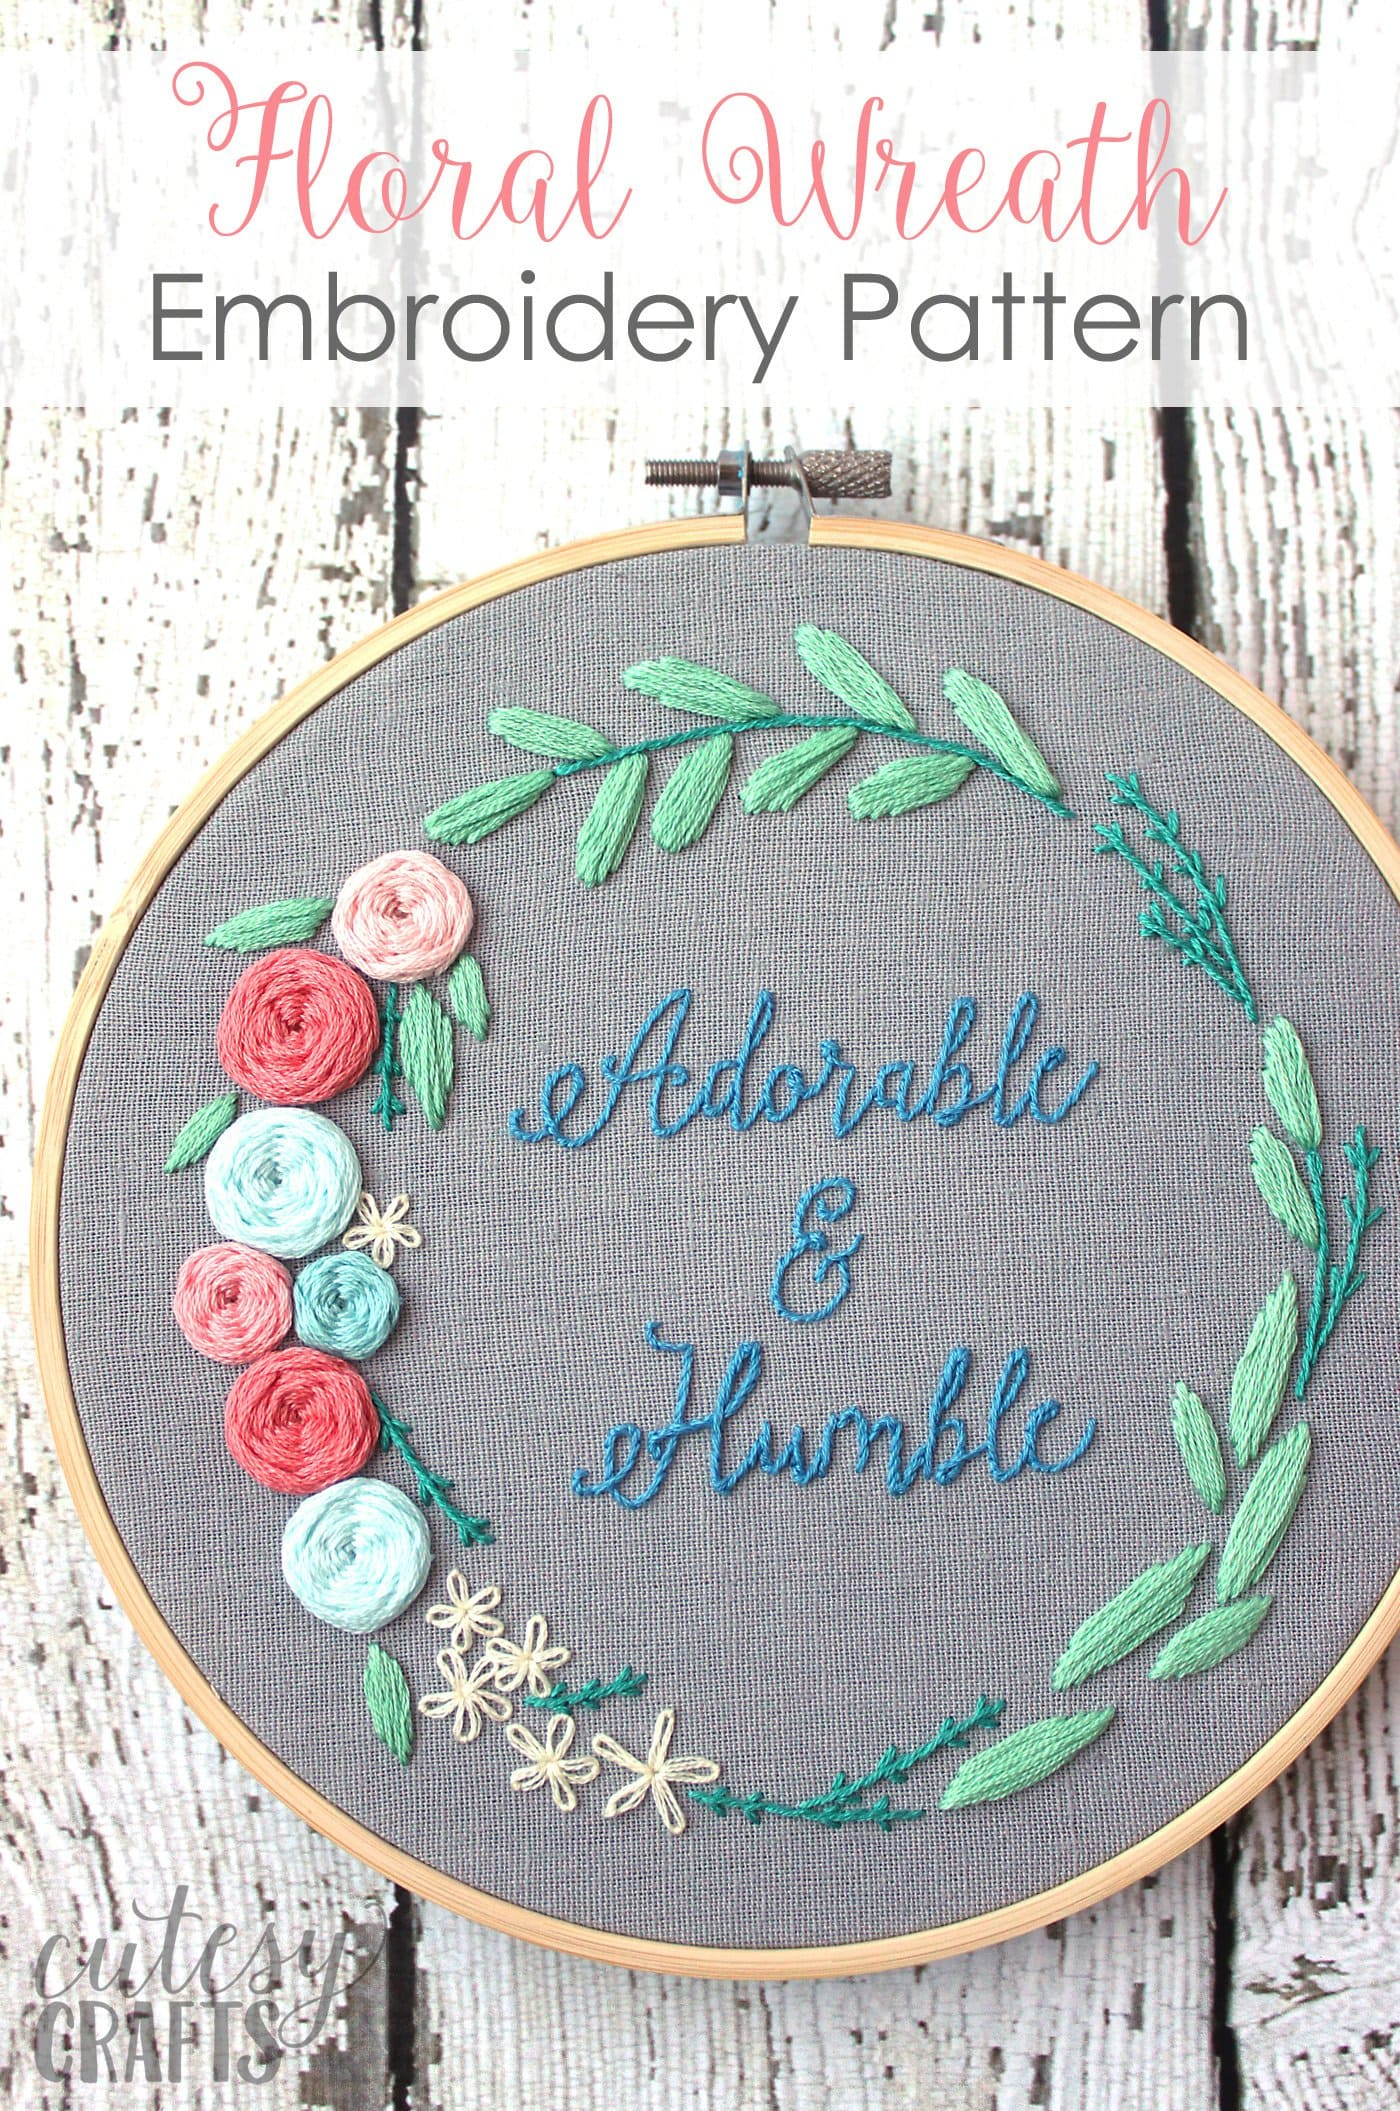 How To Make Hand Embroidery Patterns Adorable And Humble Free Floral Wreath Hand Embroidery Pattern